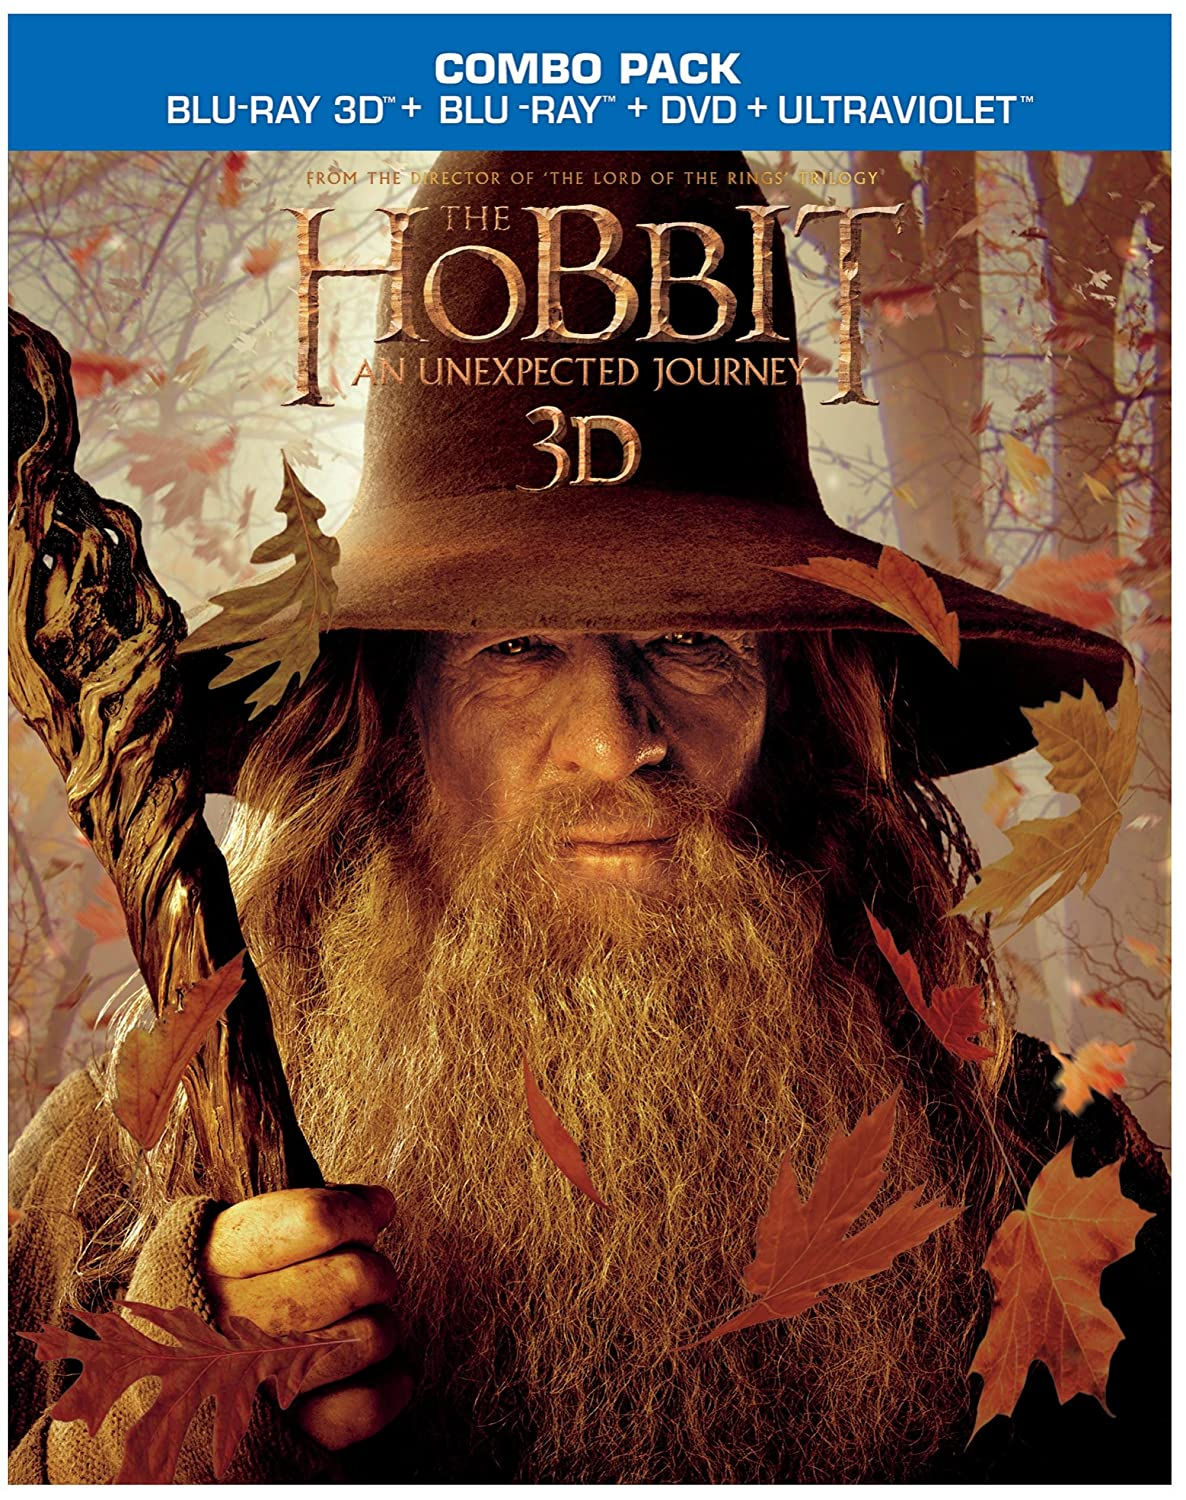 The Hobbit: An Unexpected Journey (Blu-ray 3D/Blu-ray/DVD + UltraViolet Digital Copy Combo Pack) $19.99